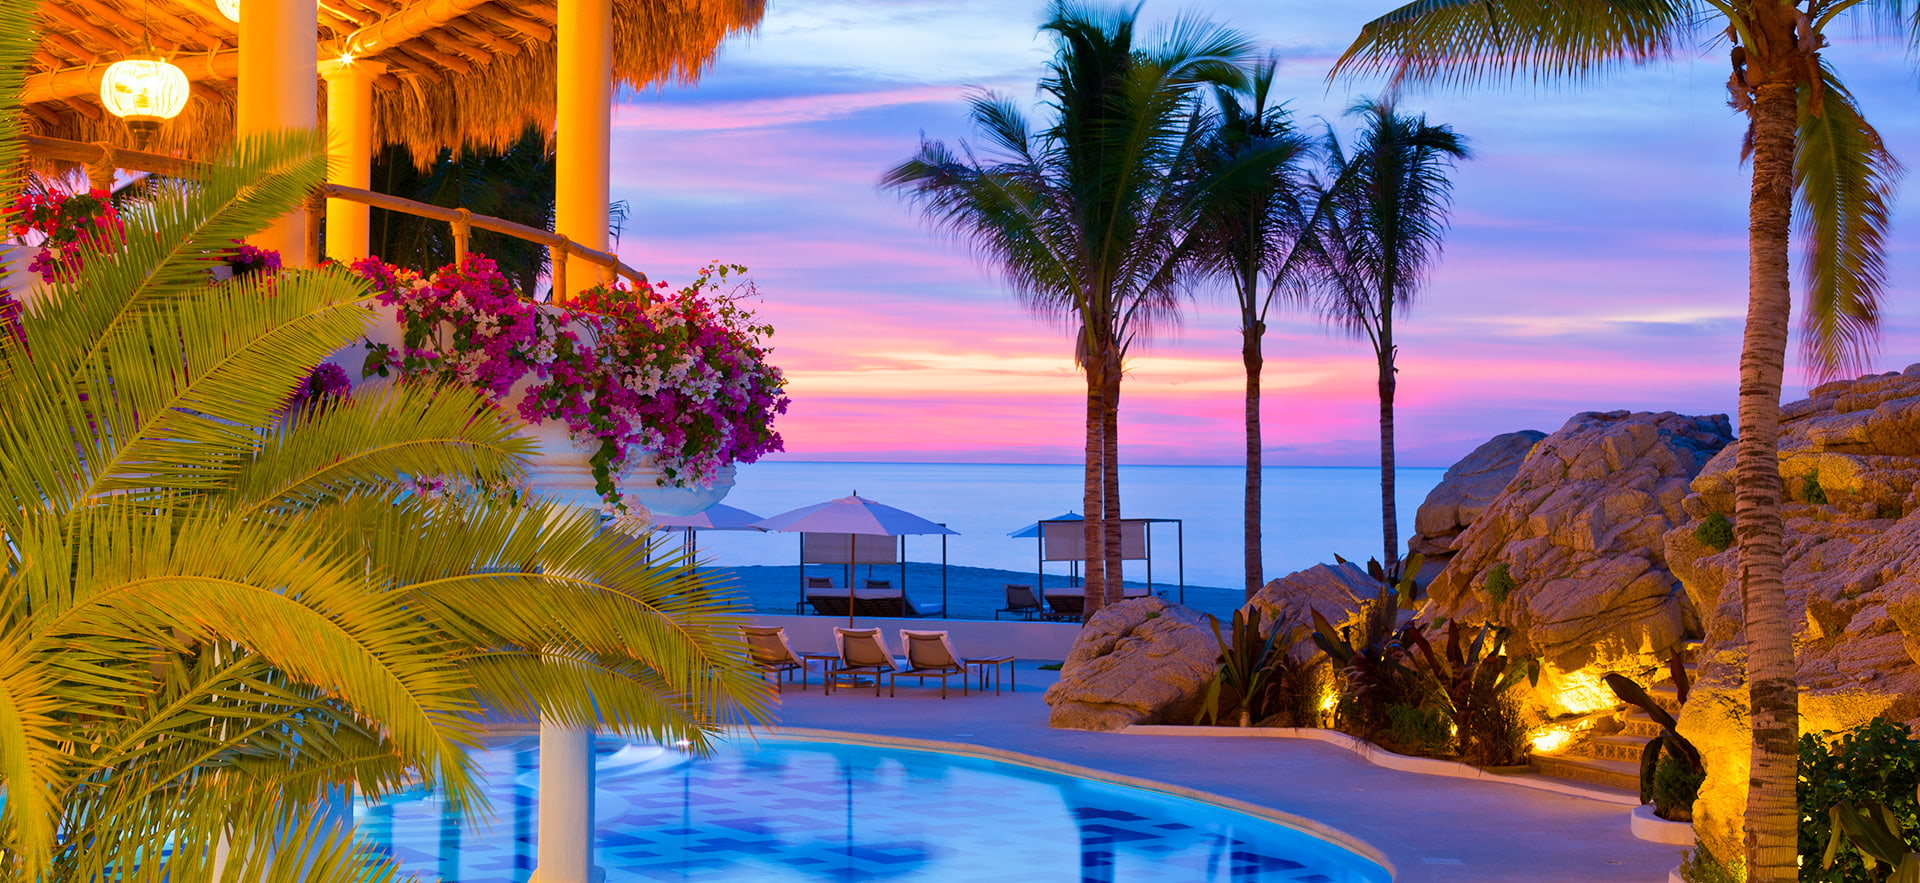 Hotel mar del cabo by Velas Resorts, con vista al mar.